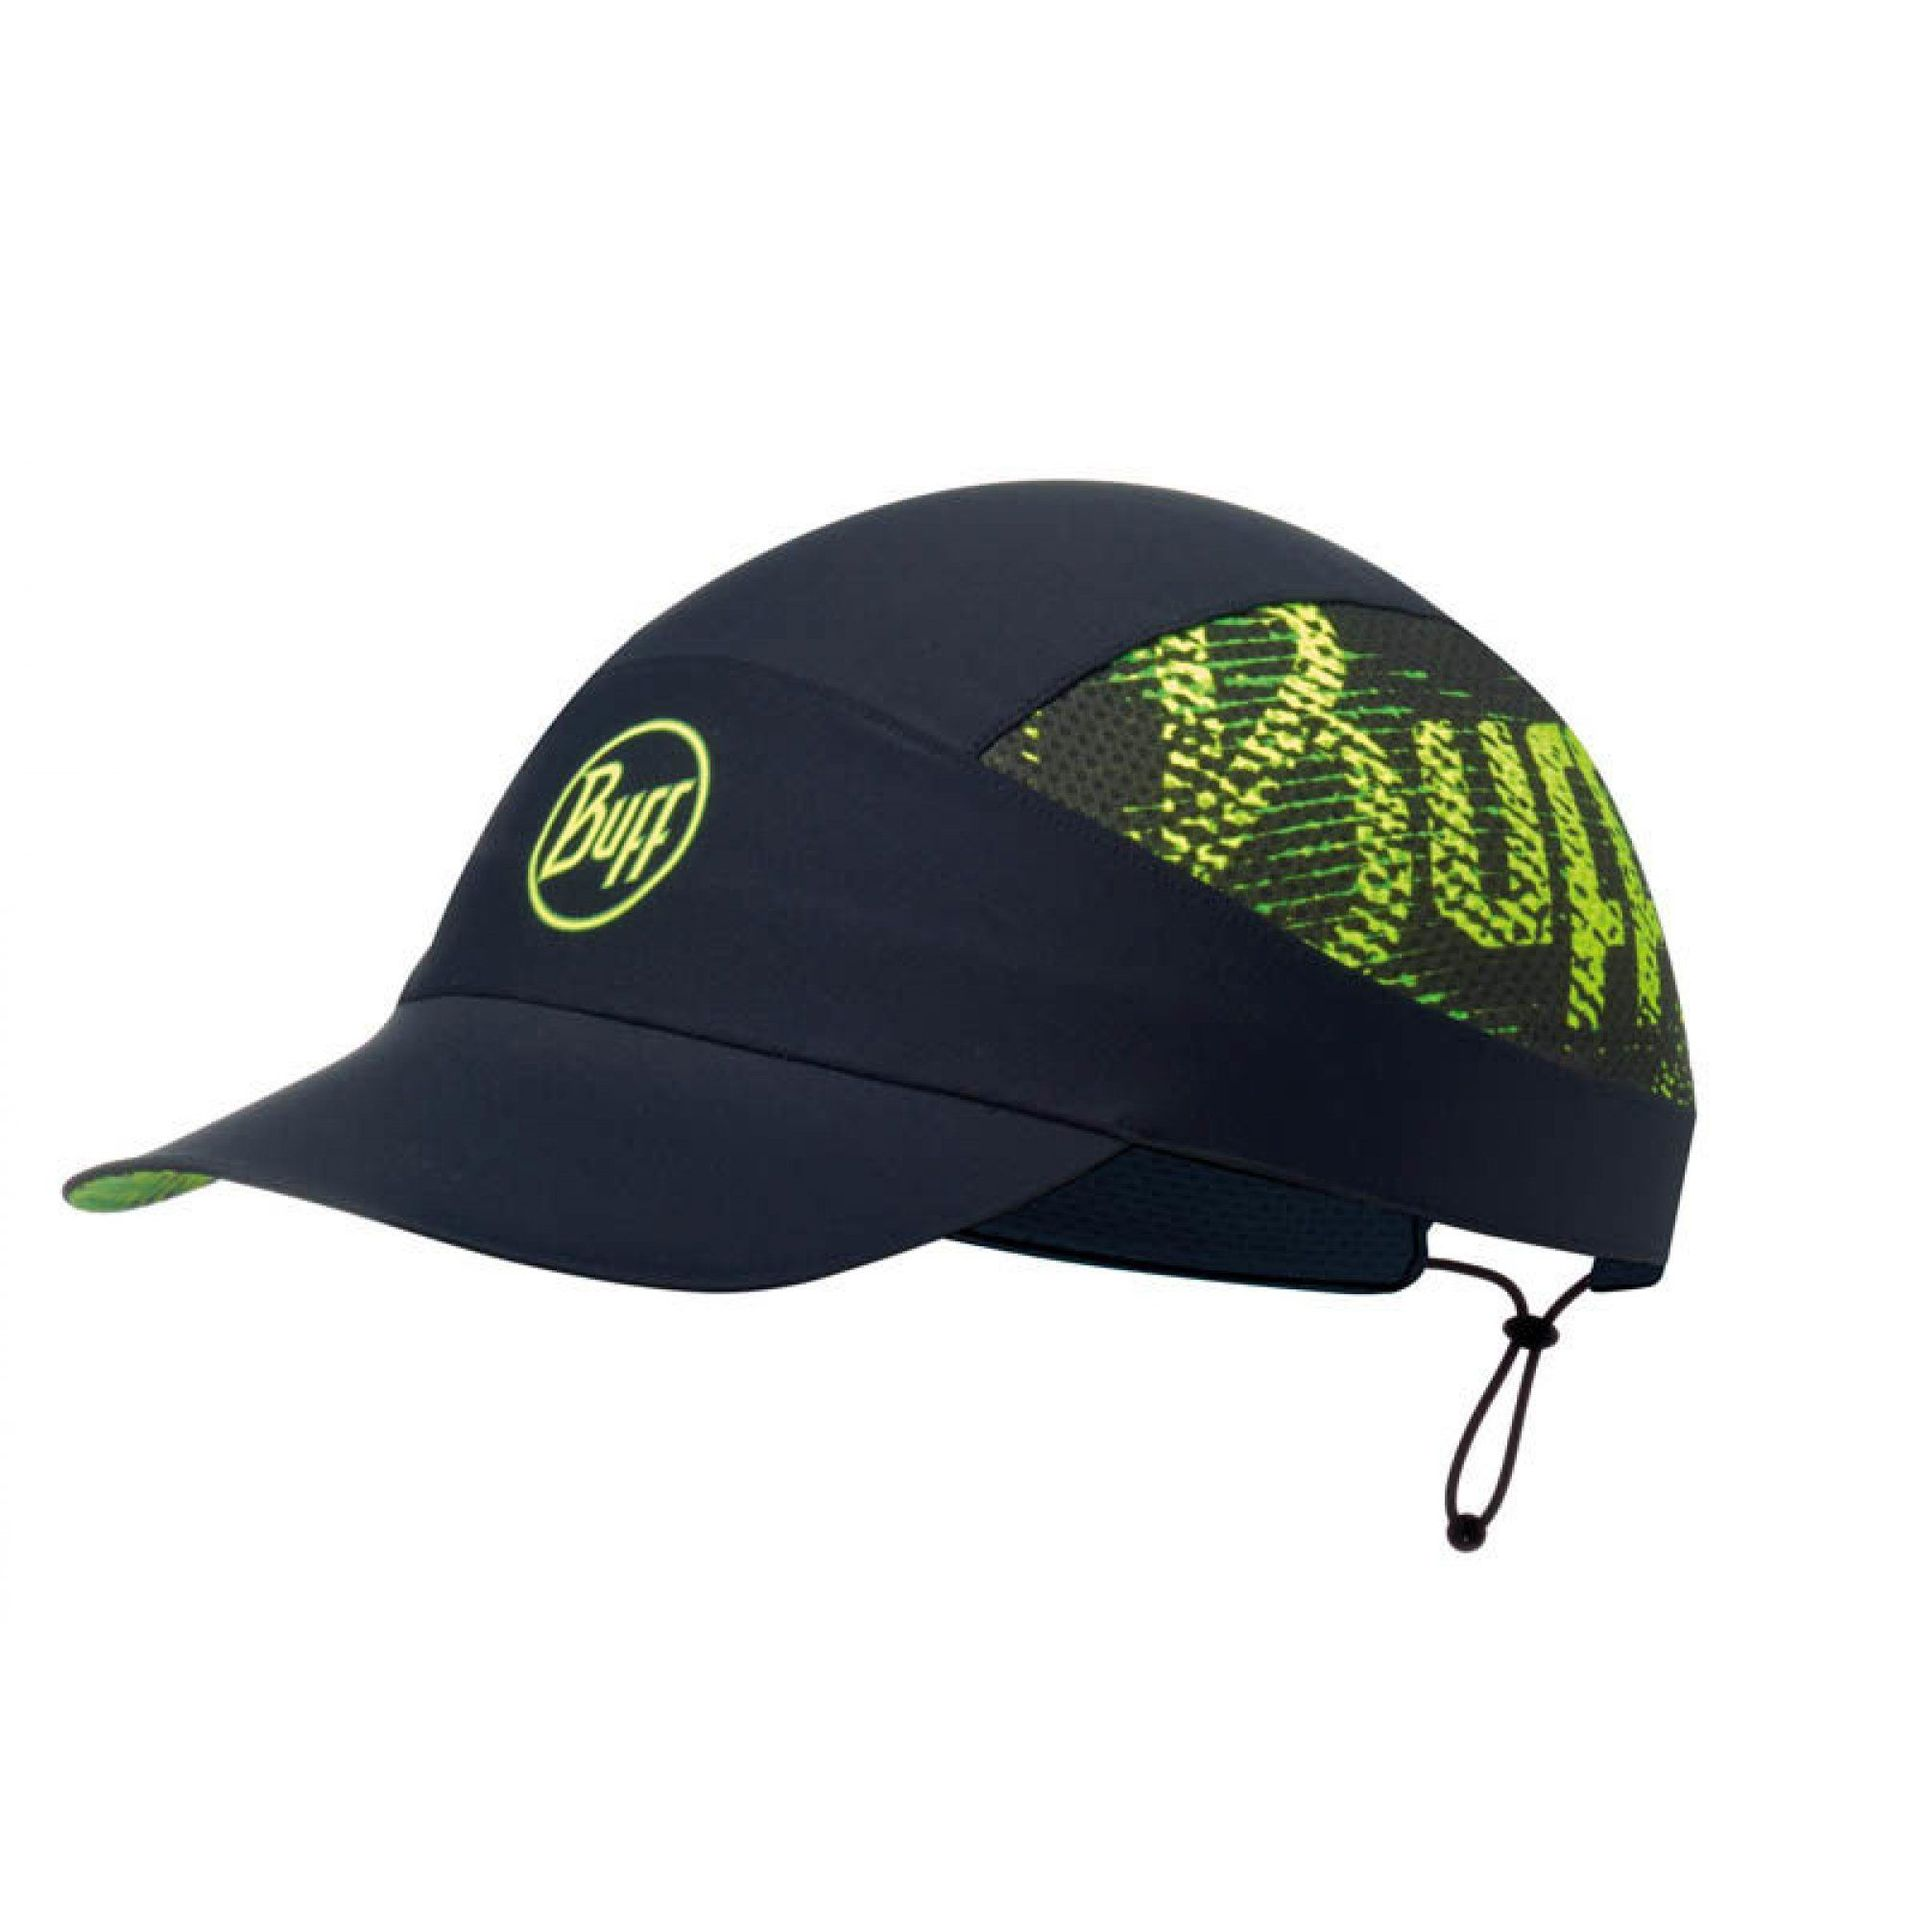 CZAPKA Z DASZKIEM BUFF PACK RUN CAP R-FLASH LOGO BLACK